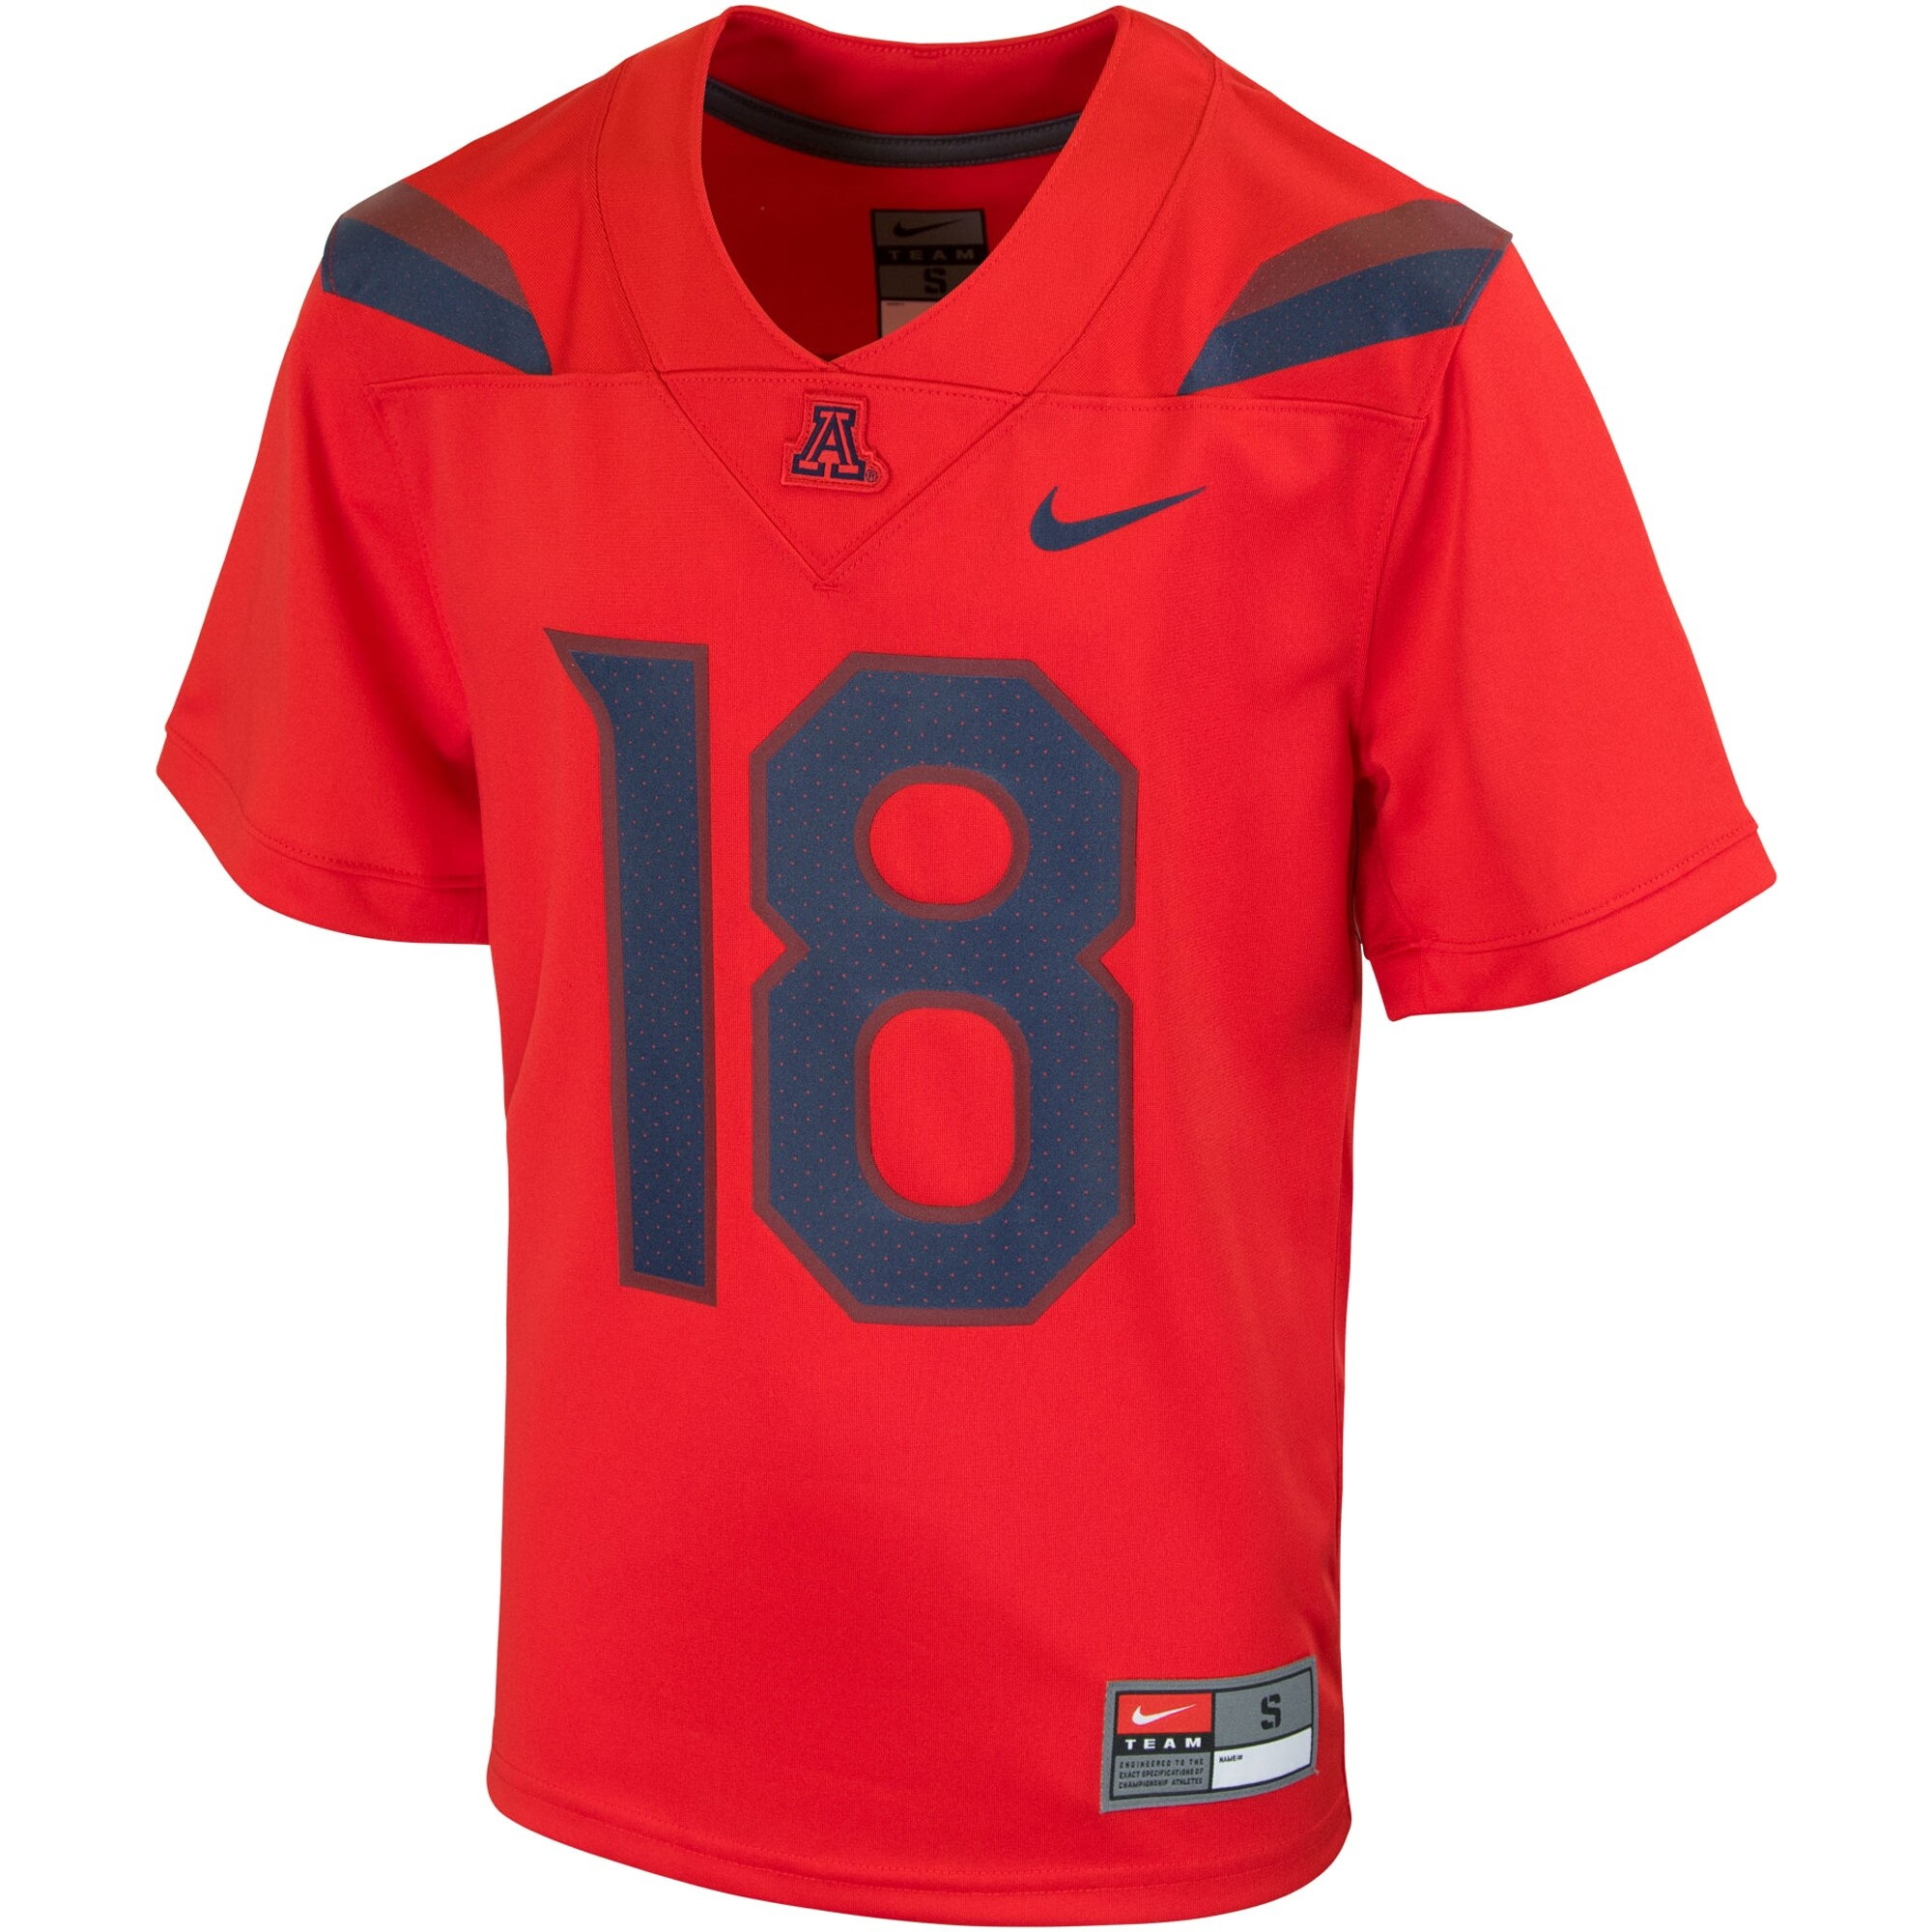 Image For Nike: #18 Arizona Wildcats Youth Replica Football Jersey